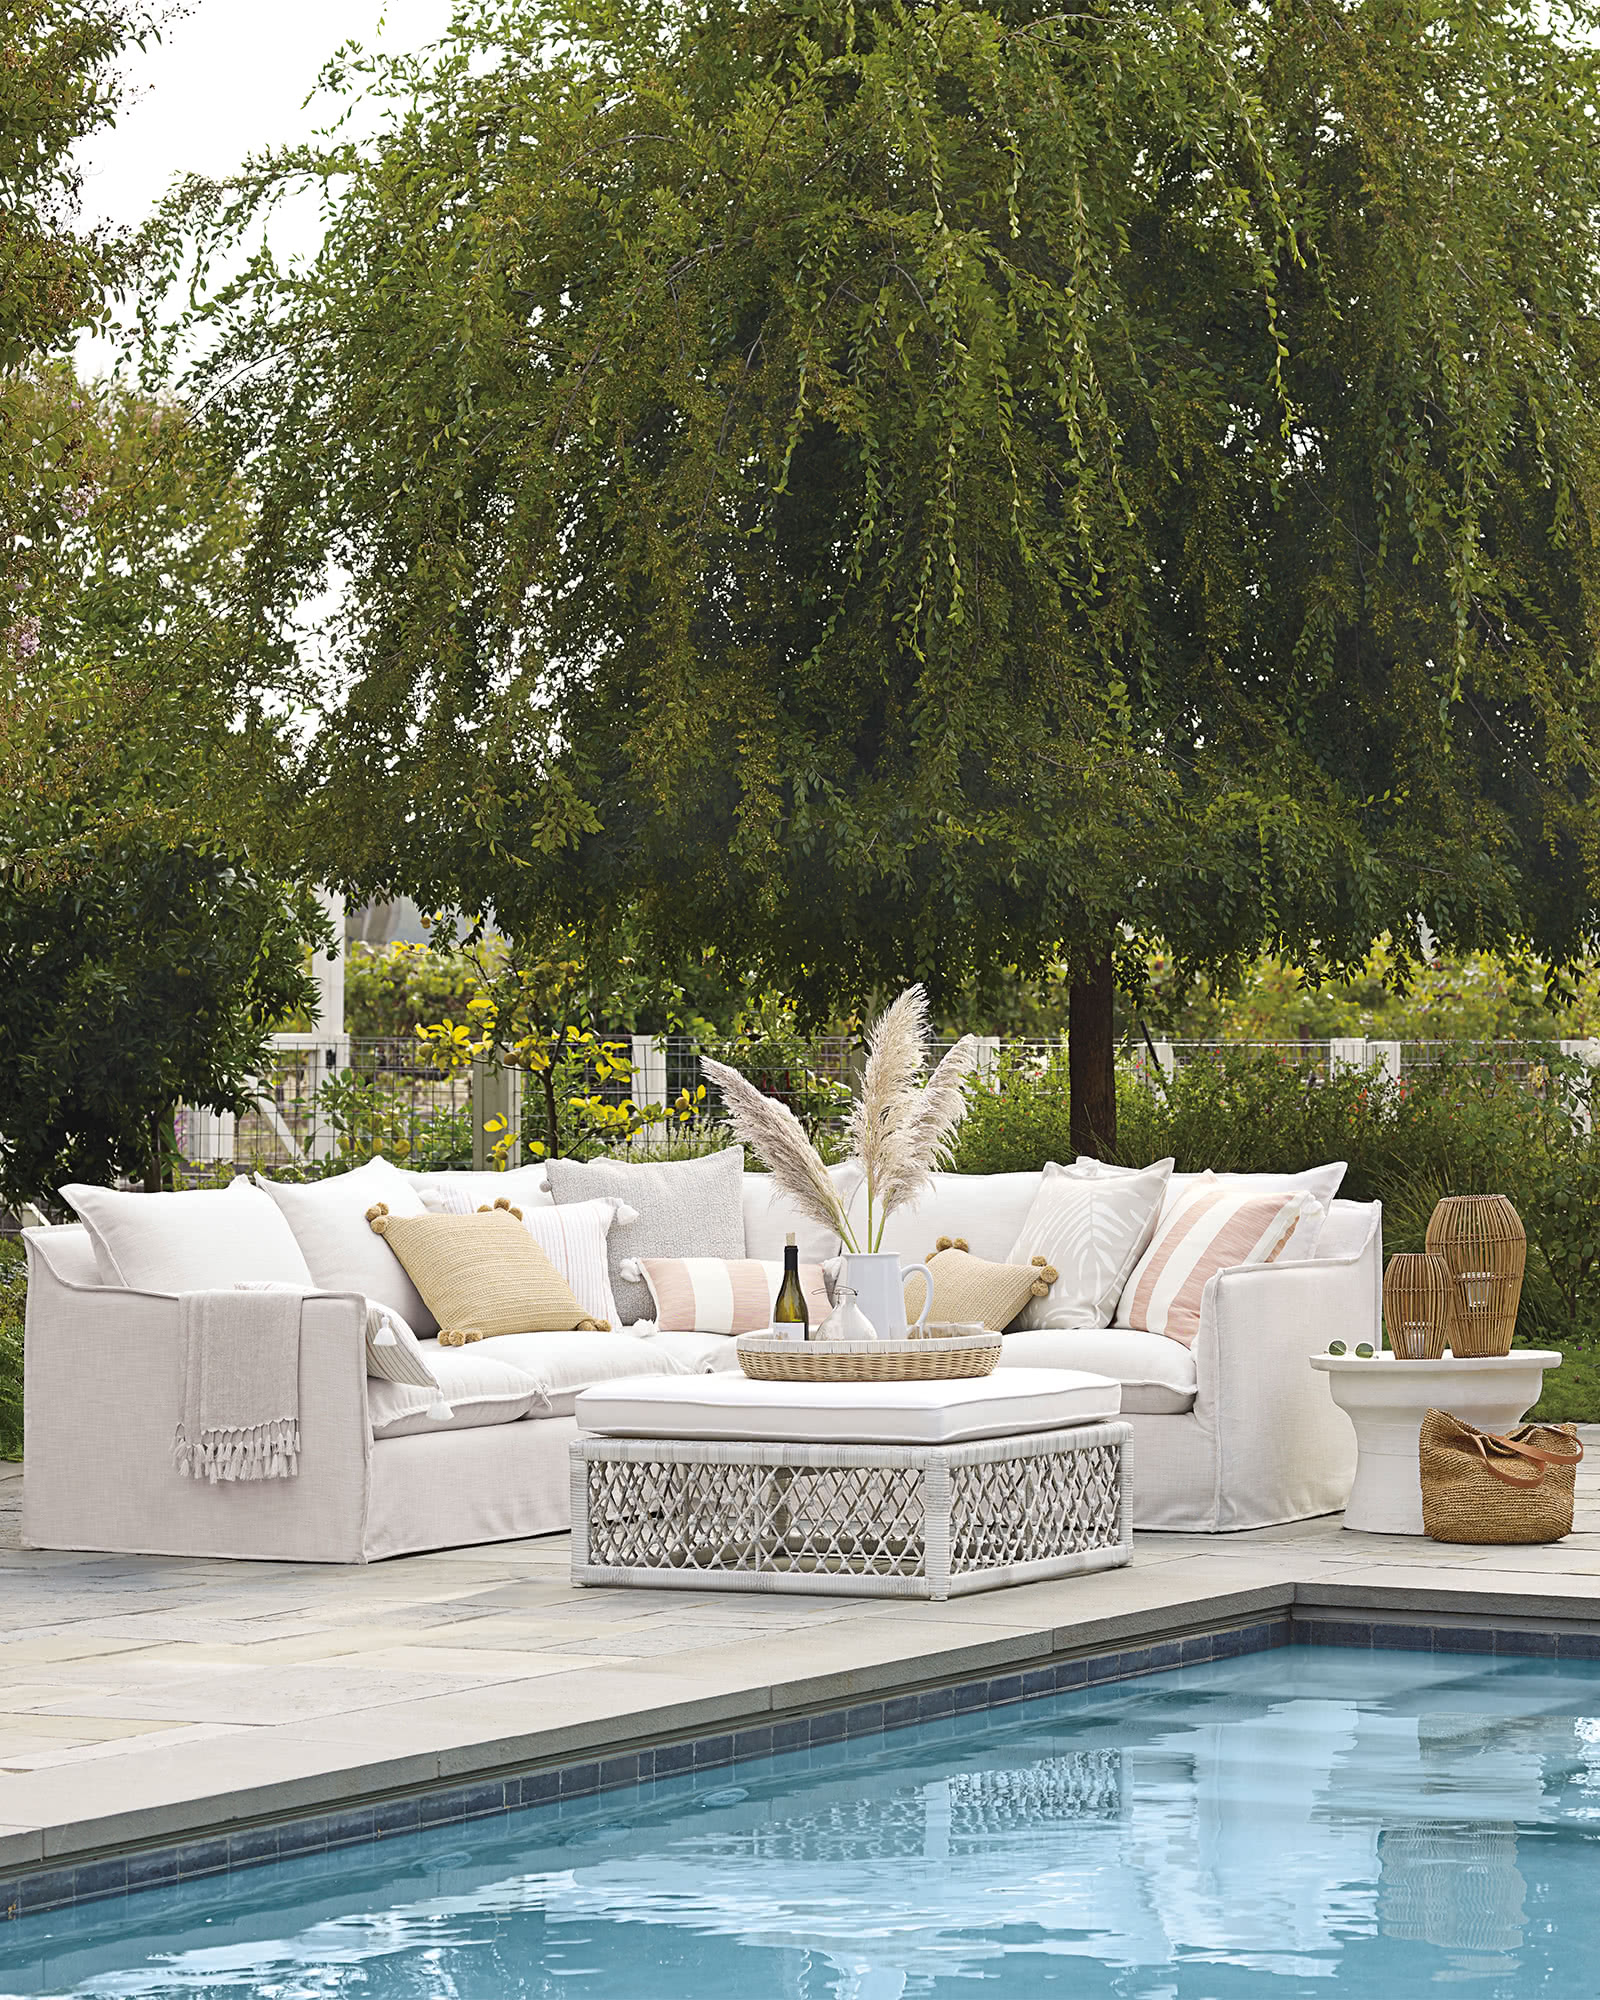 Sundial Outdoor Slipcovered Sectional - Left-Facing,